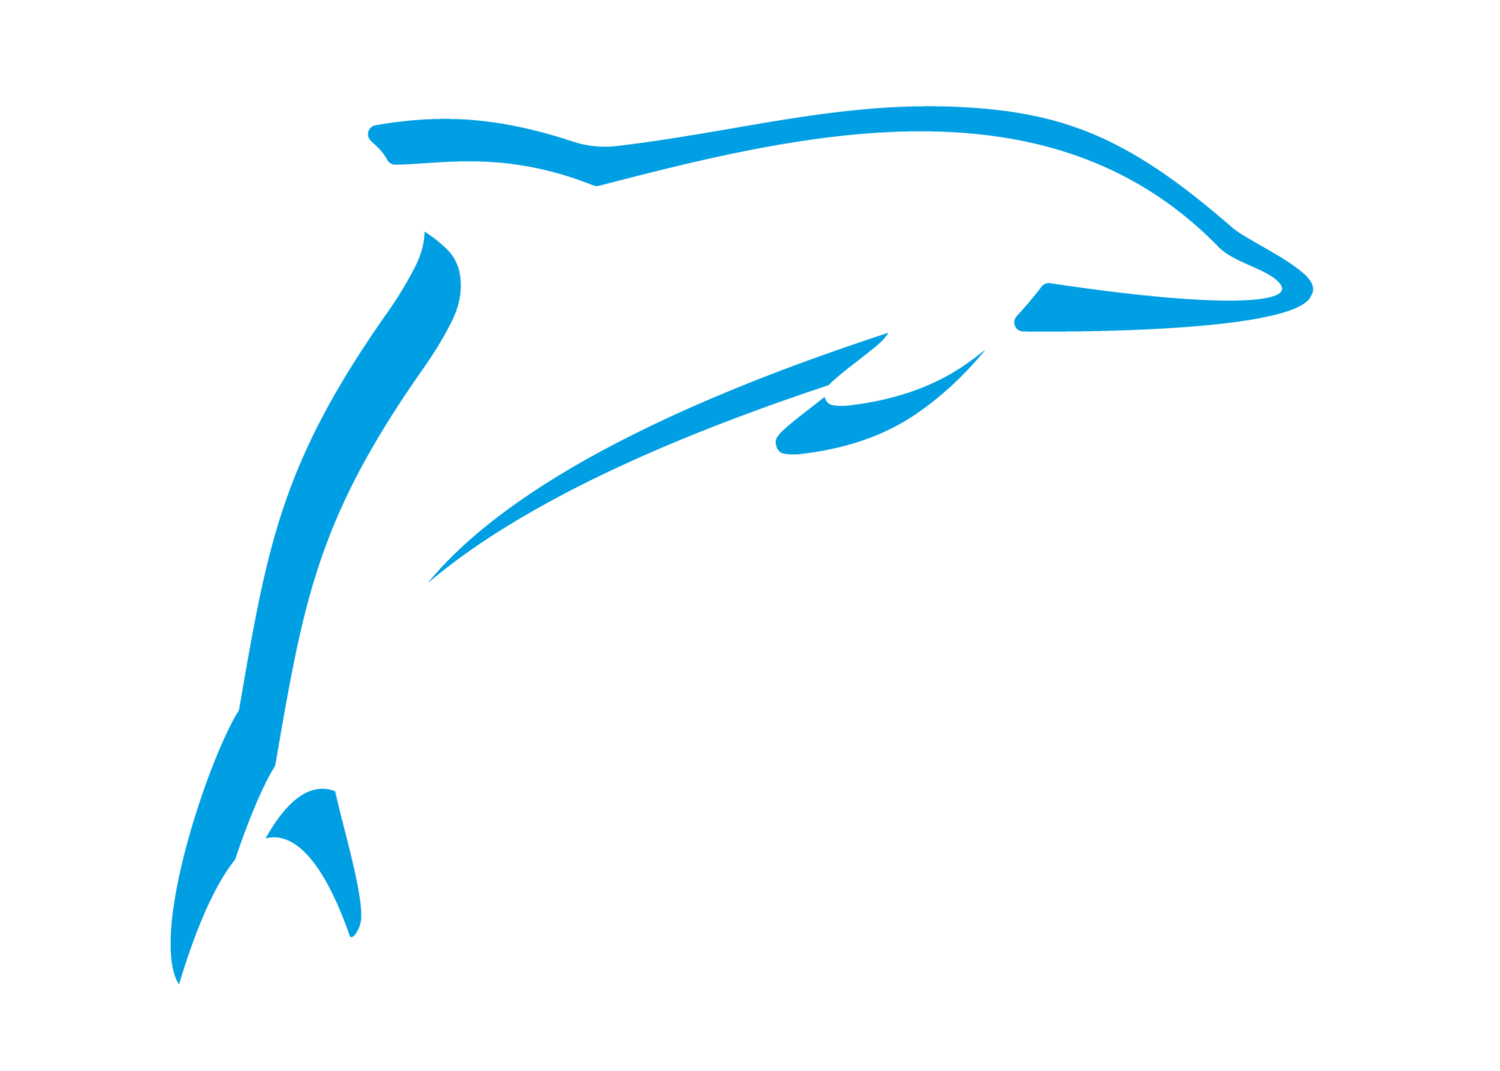 The Dolphin Laundry